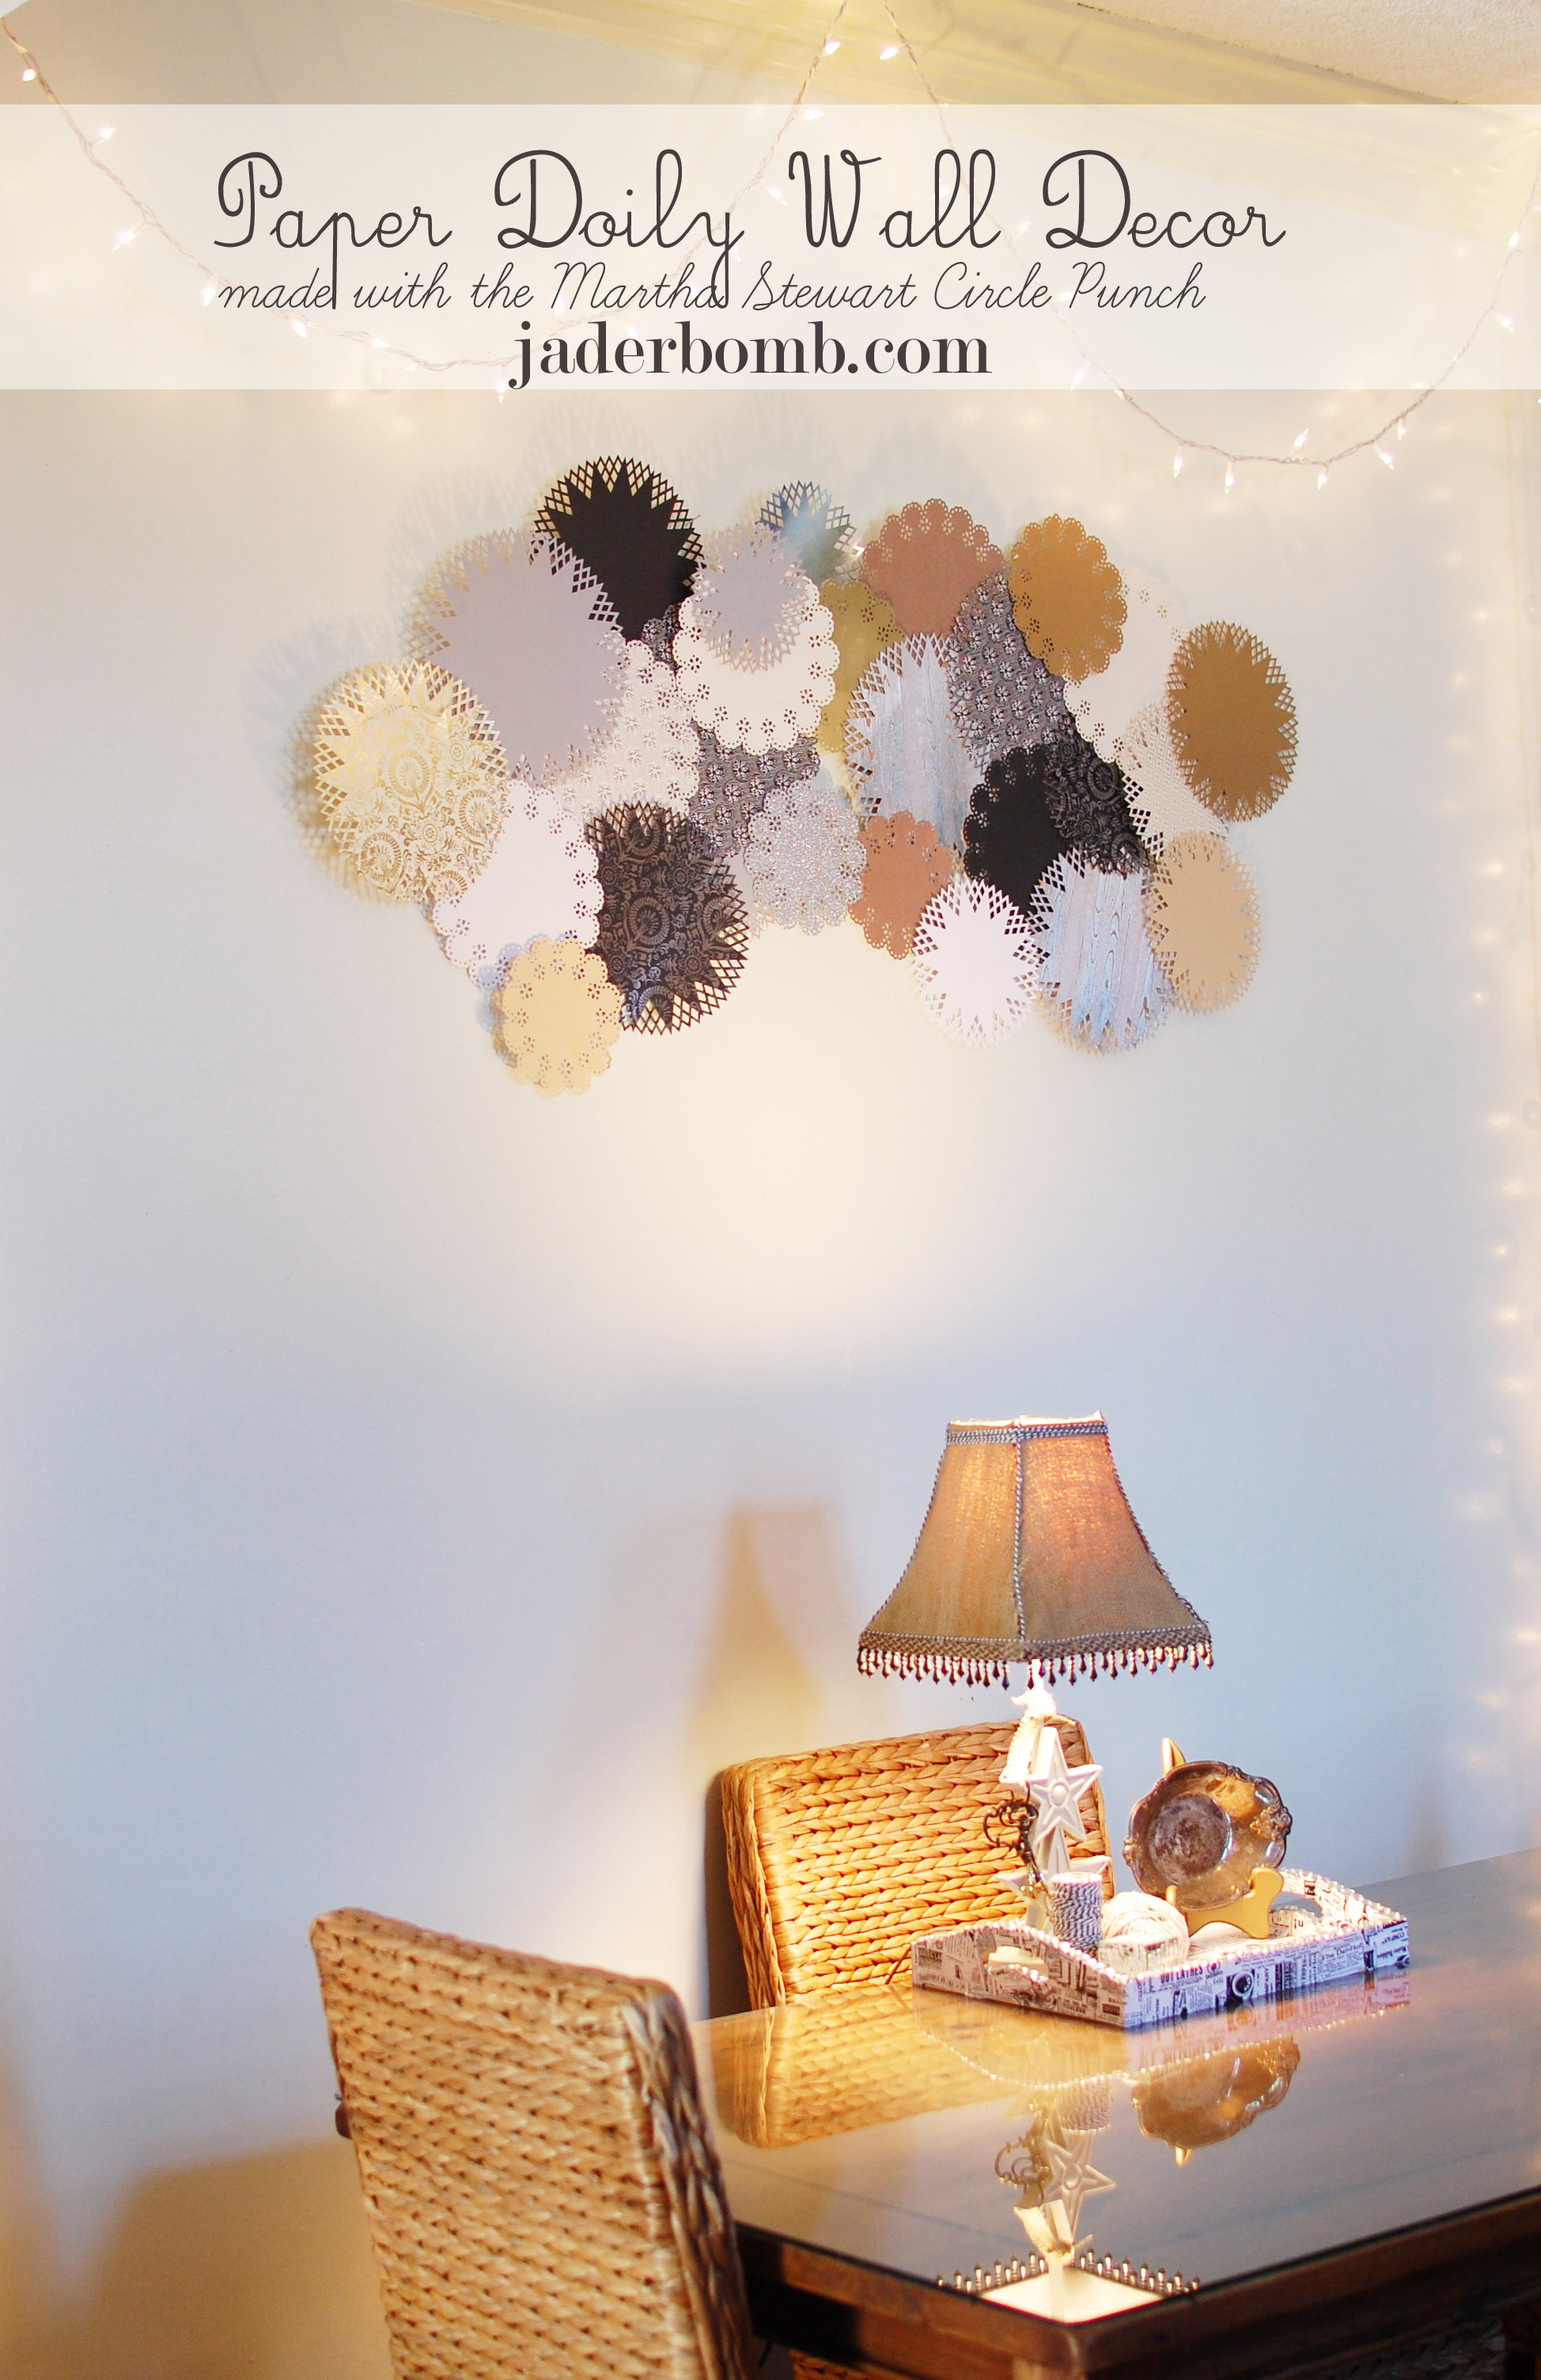 JADERBOMB - Paper Doily Wall Decor using the Martha Stewart Circle ...